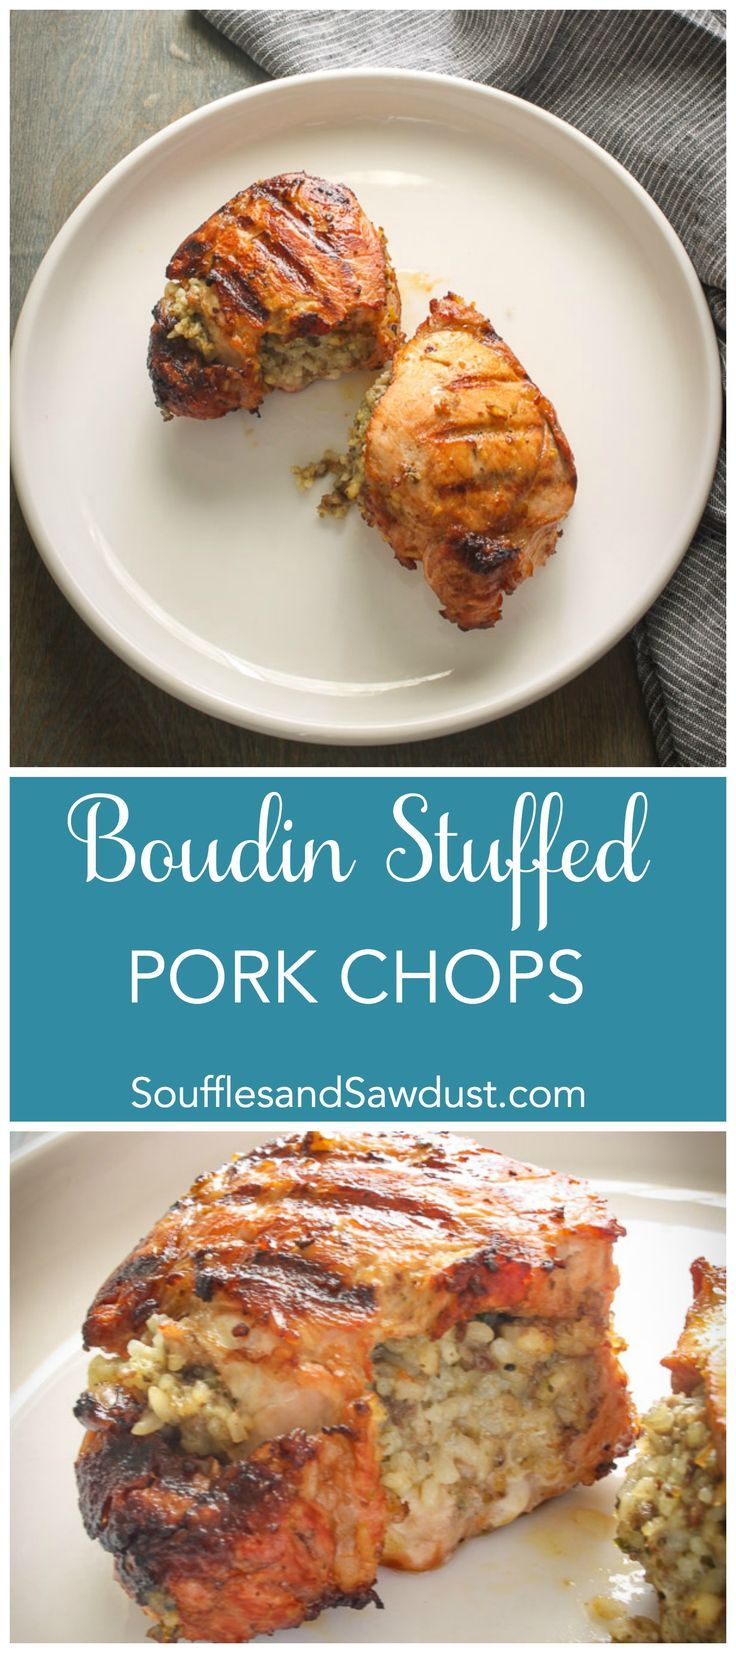 Thick and juicy pork loin chops stuffed with Cajun boudin sausage. From the humorous food blog, SoufflesandSawdust.com